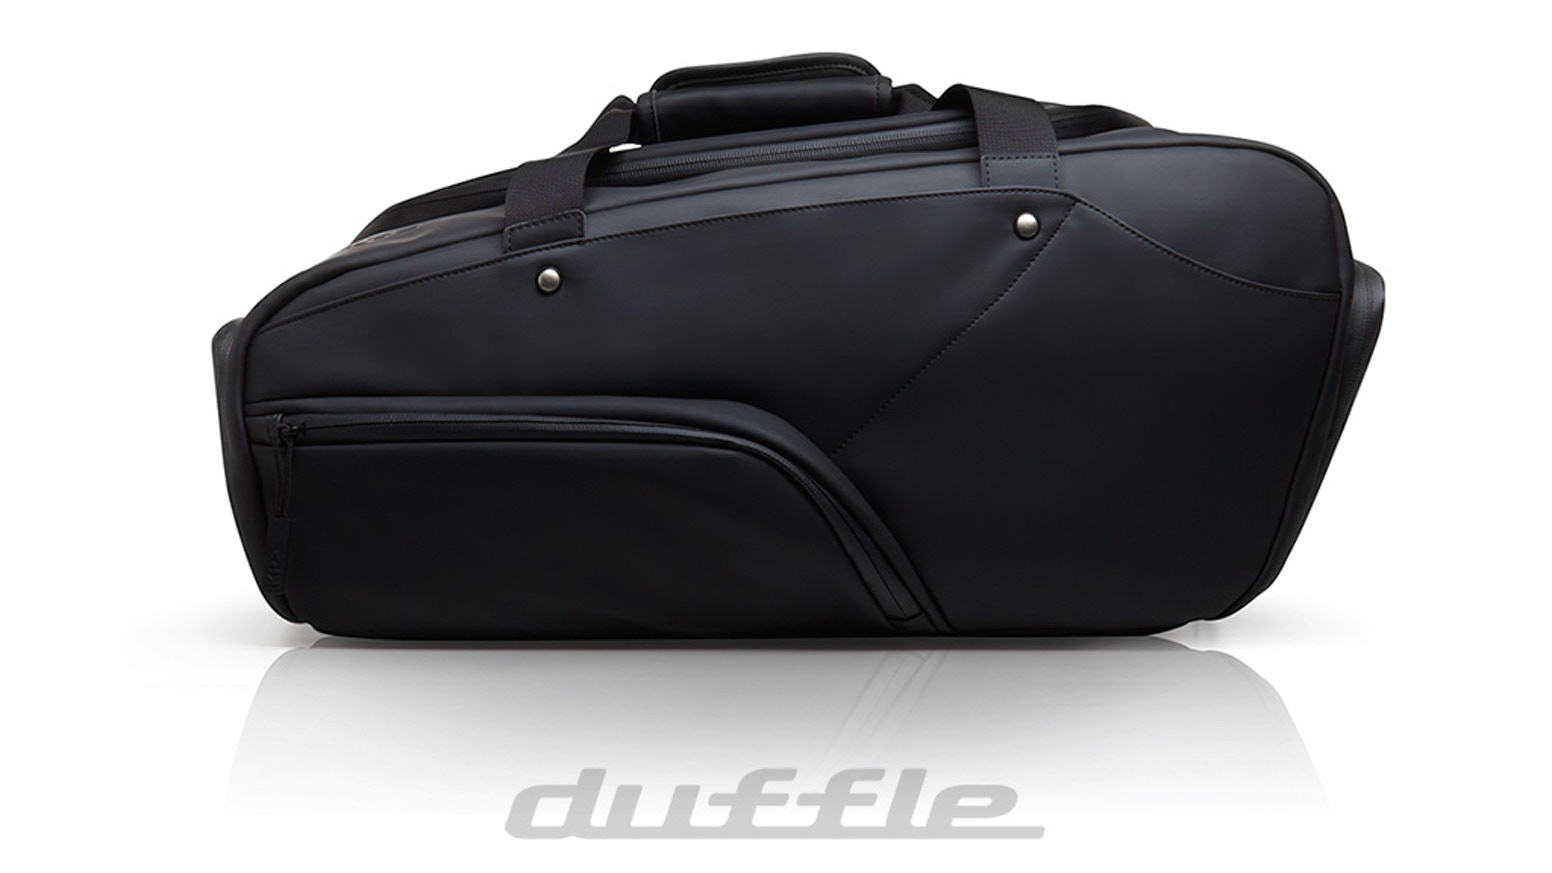 7ab63b95ae KP Duffle - The Ultimate Travel Bag. A bag that not only has a stunning  appearance but offers functionality and performance second to